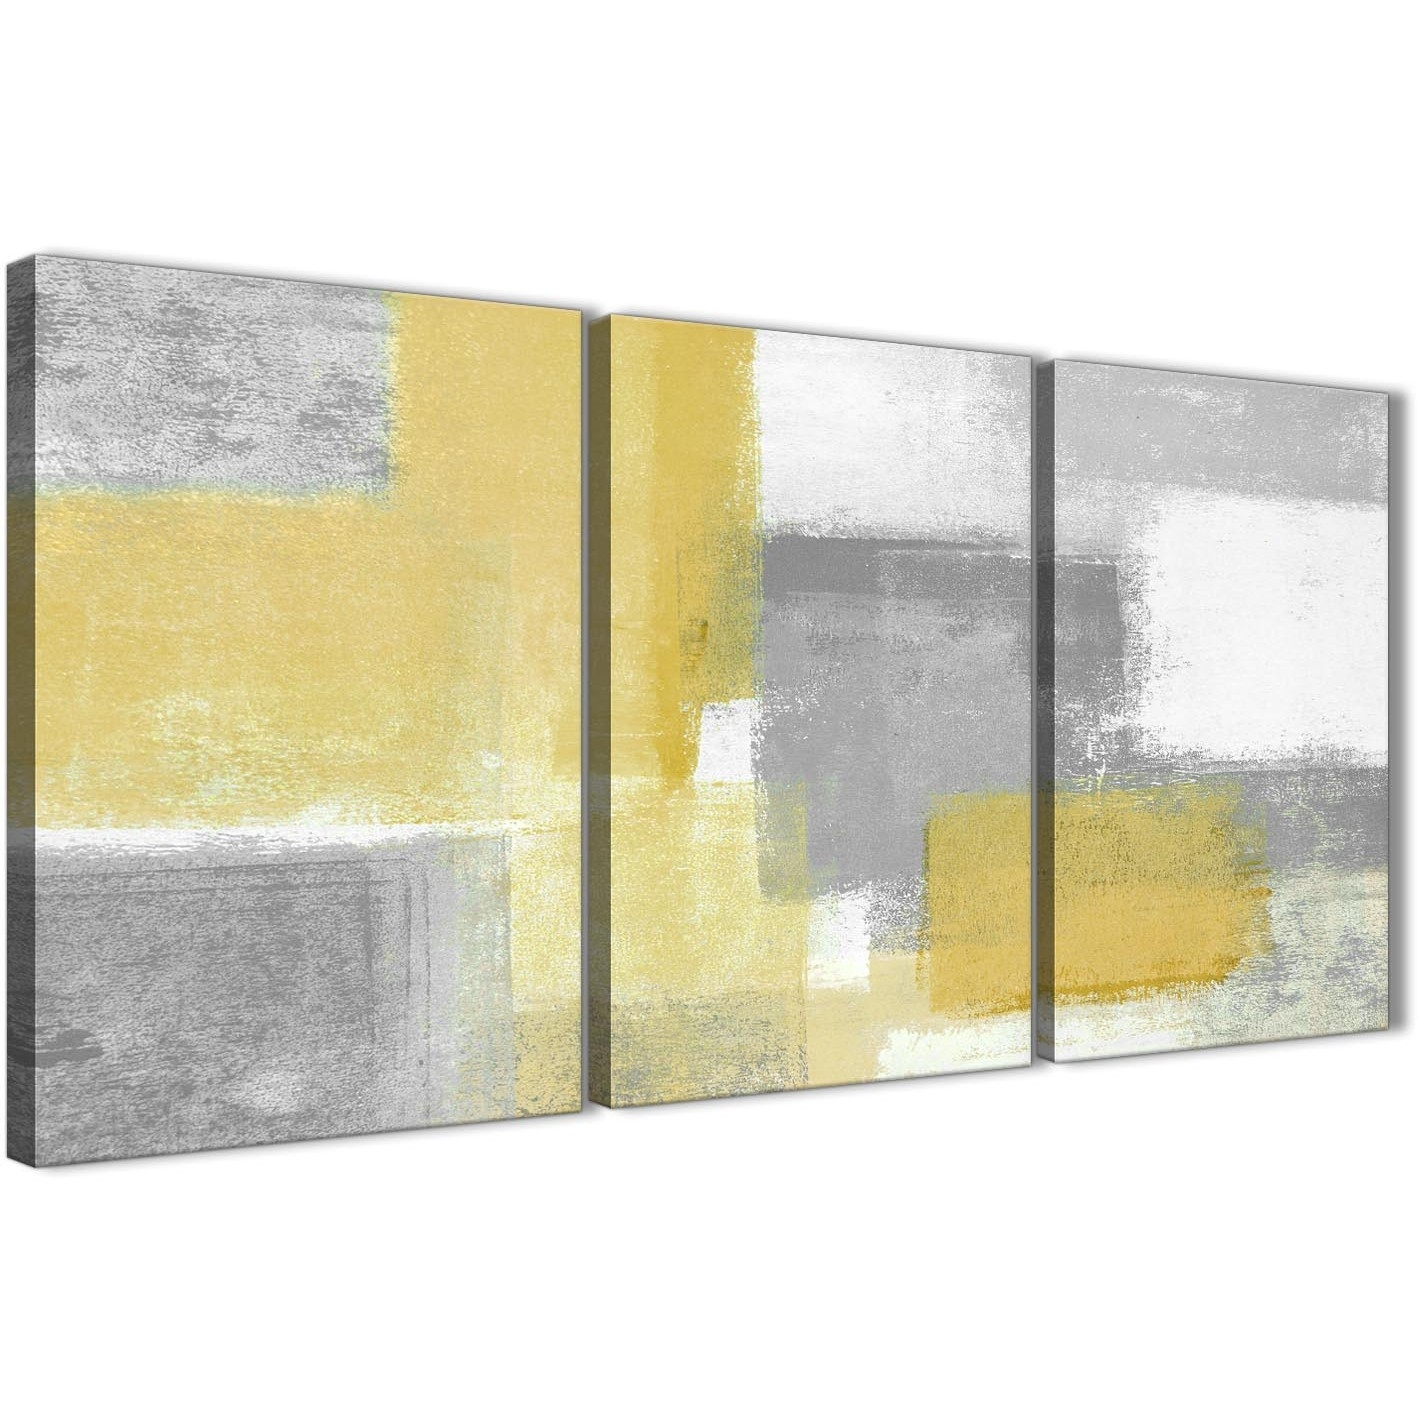 3 Panel Mustard Yellow Grey Kitchen Canvas Wall Art Decor – Abstract Pertaining To 2017 3 Piece Canvas Wall Art (View 1 of 15)